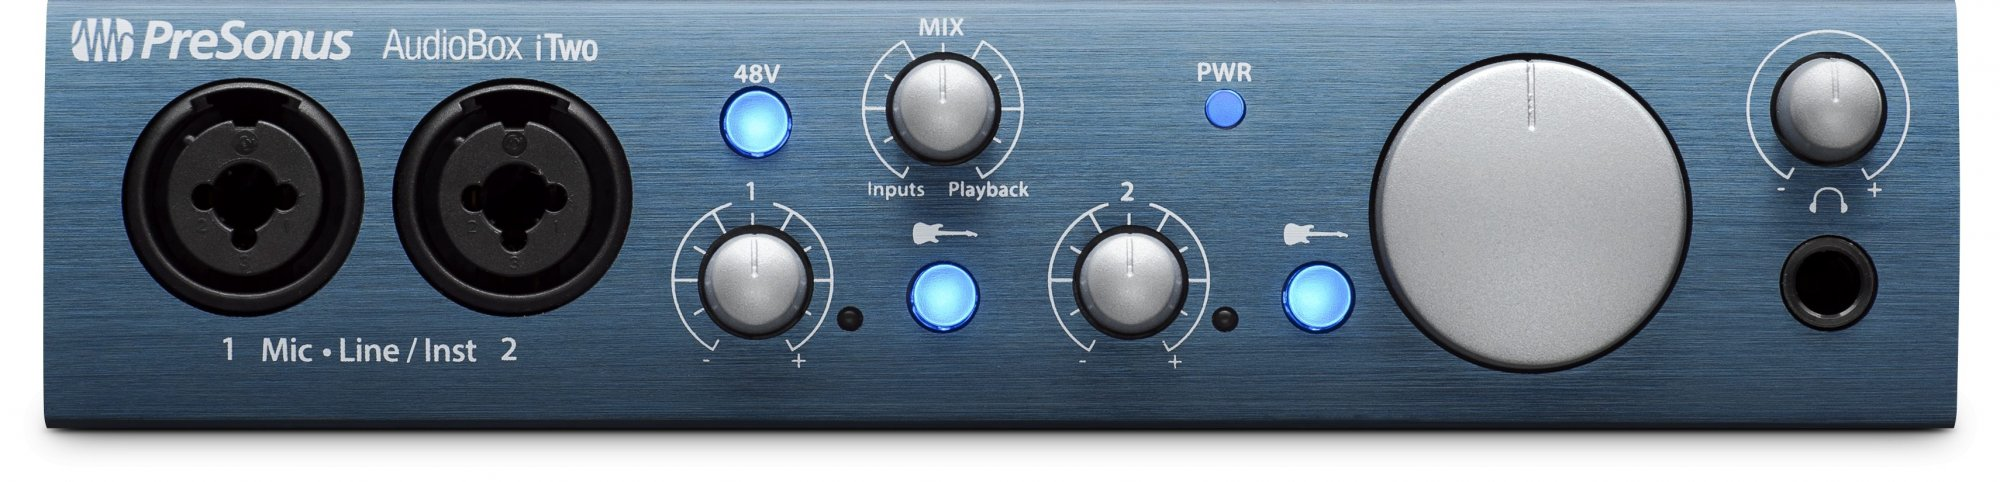 Presonus AudioBox iTwo: 2x2 USB 2.0 / iOS interface w/2 Mic inputs Studio One Artist